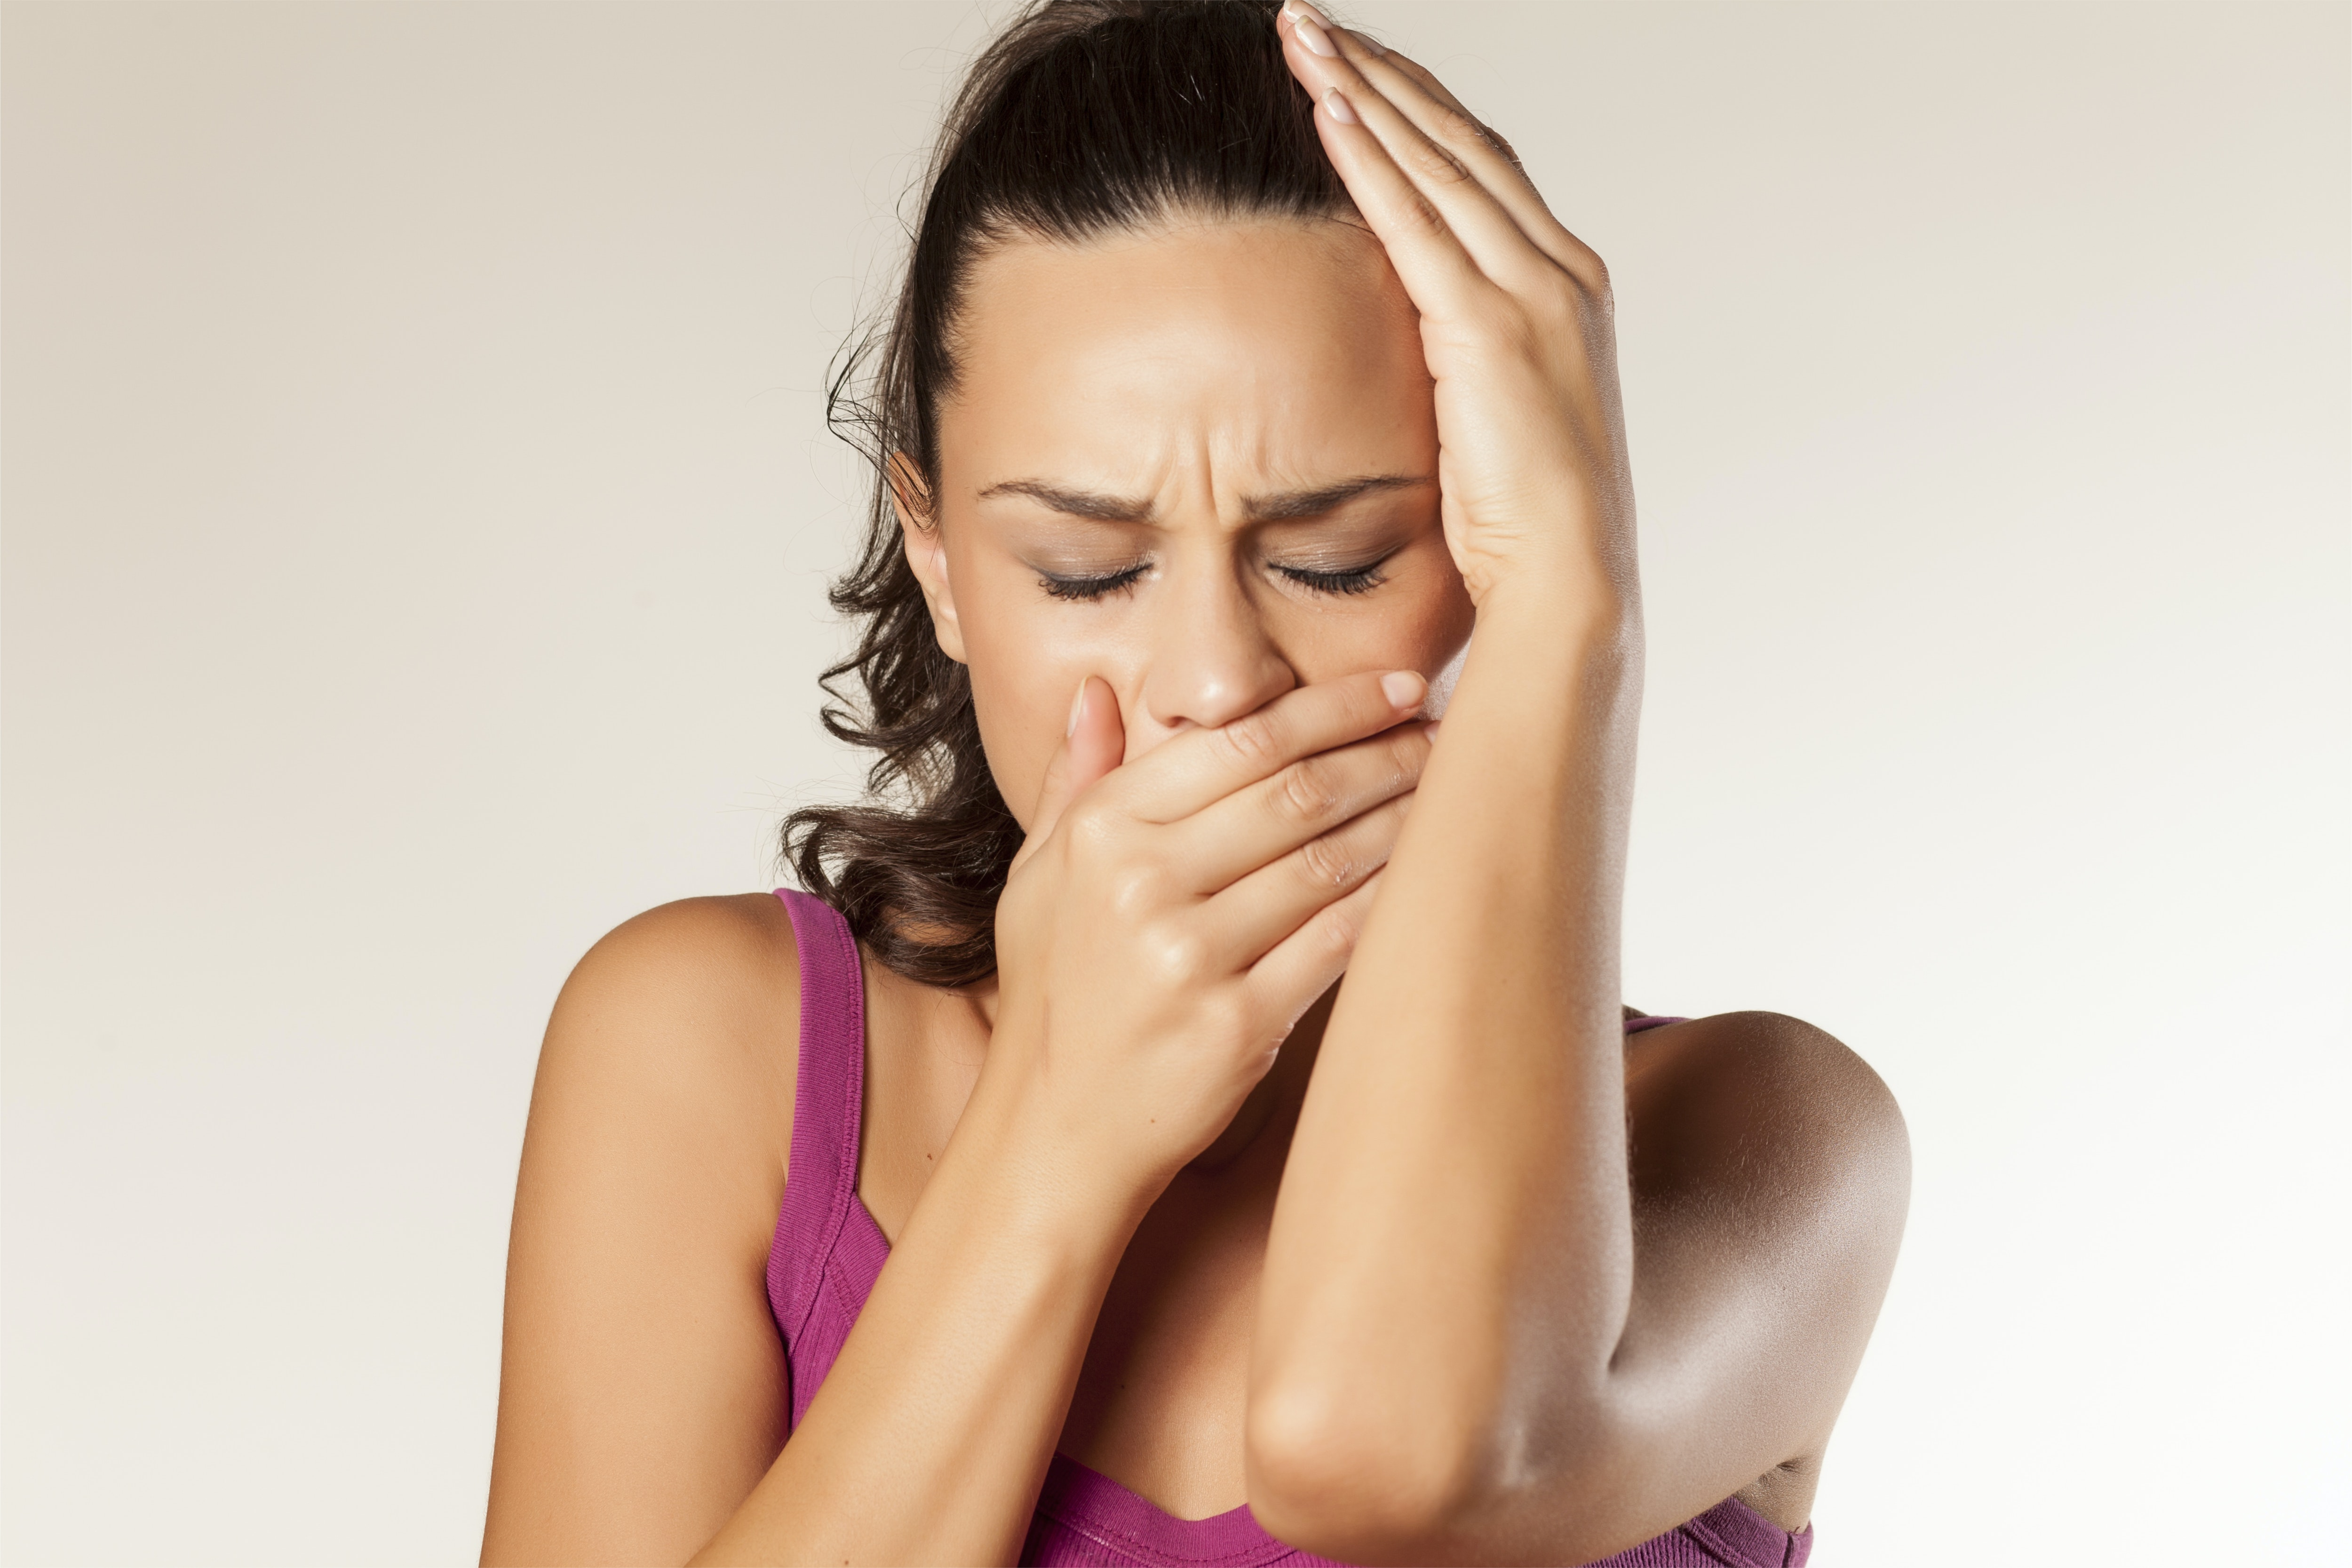 An image depicting a person suffering from severe jaw pain symptoms